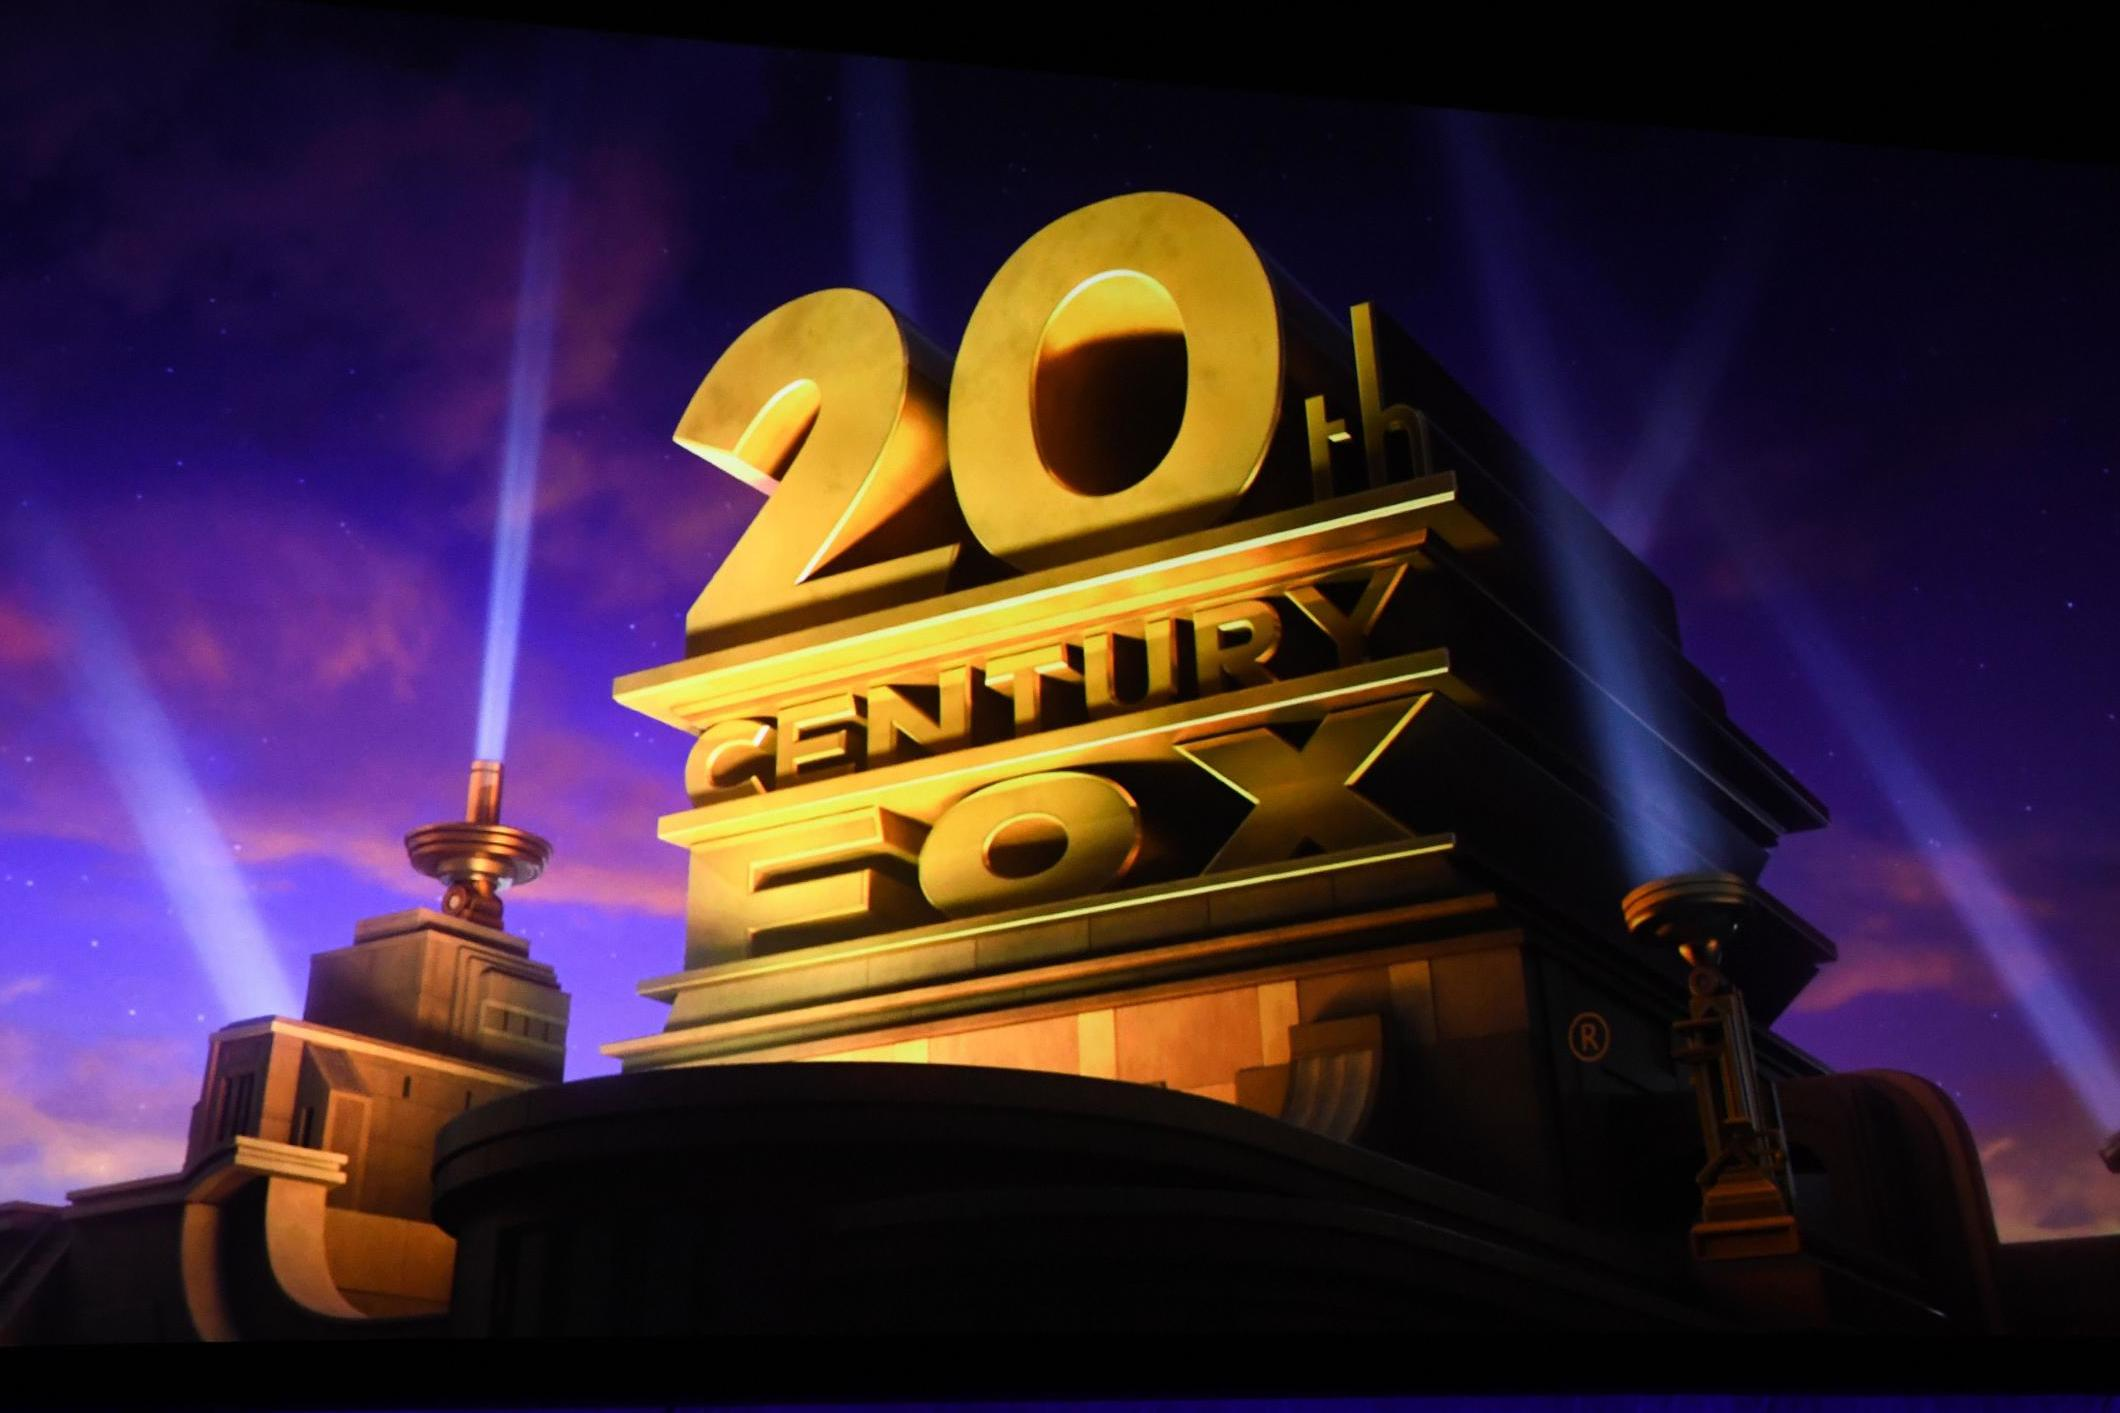 Disney drops the word 'Fox' from 20th Century Fox name